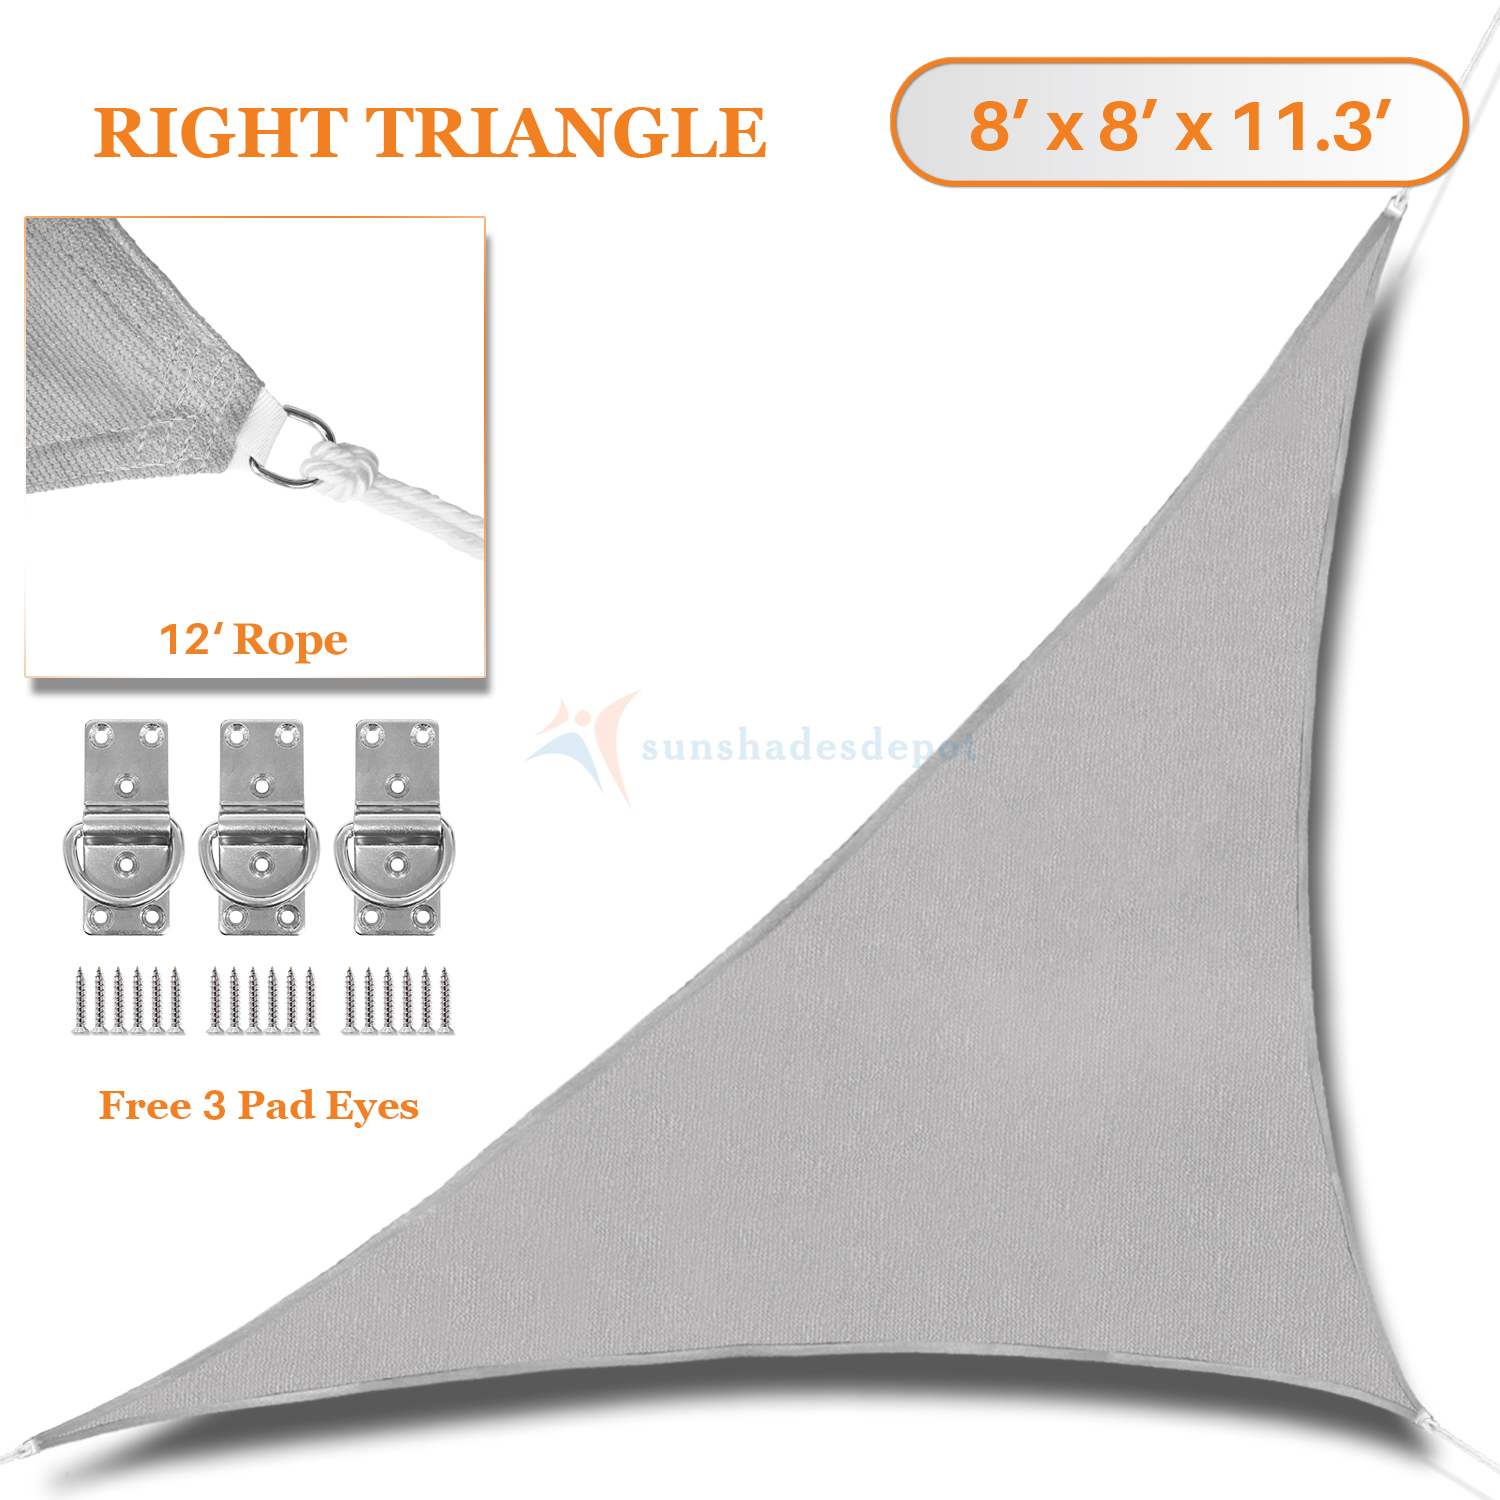 Sunshades Depot 8' x 8' x 11.3' Sun Shade Sail Right Triangle Permeable Canopy Light Gray Custom Size Available Commercial Standard